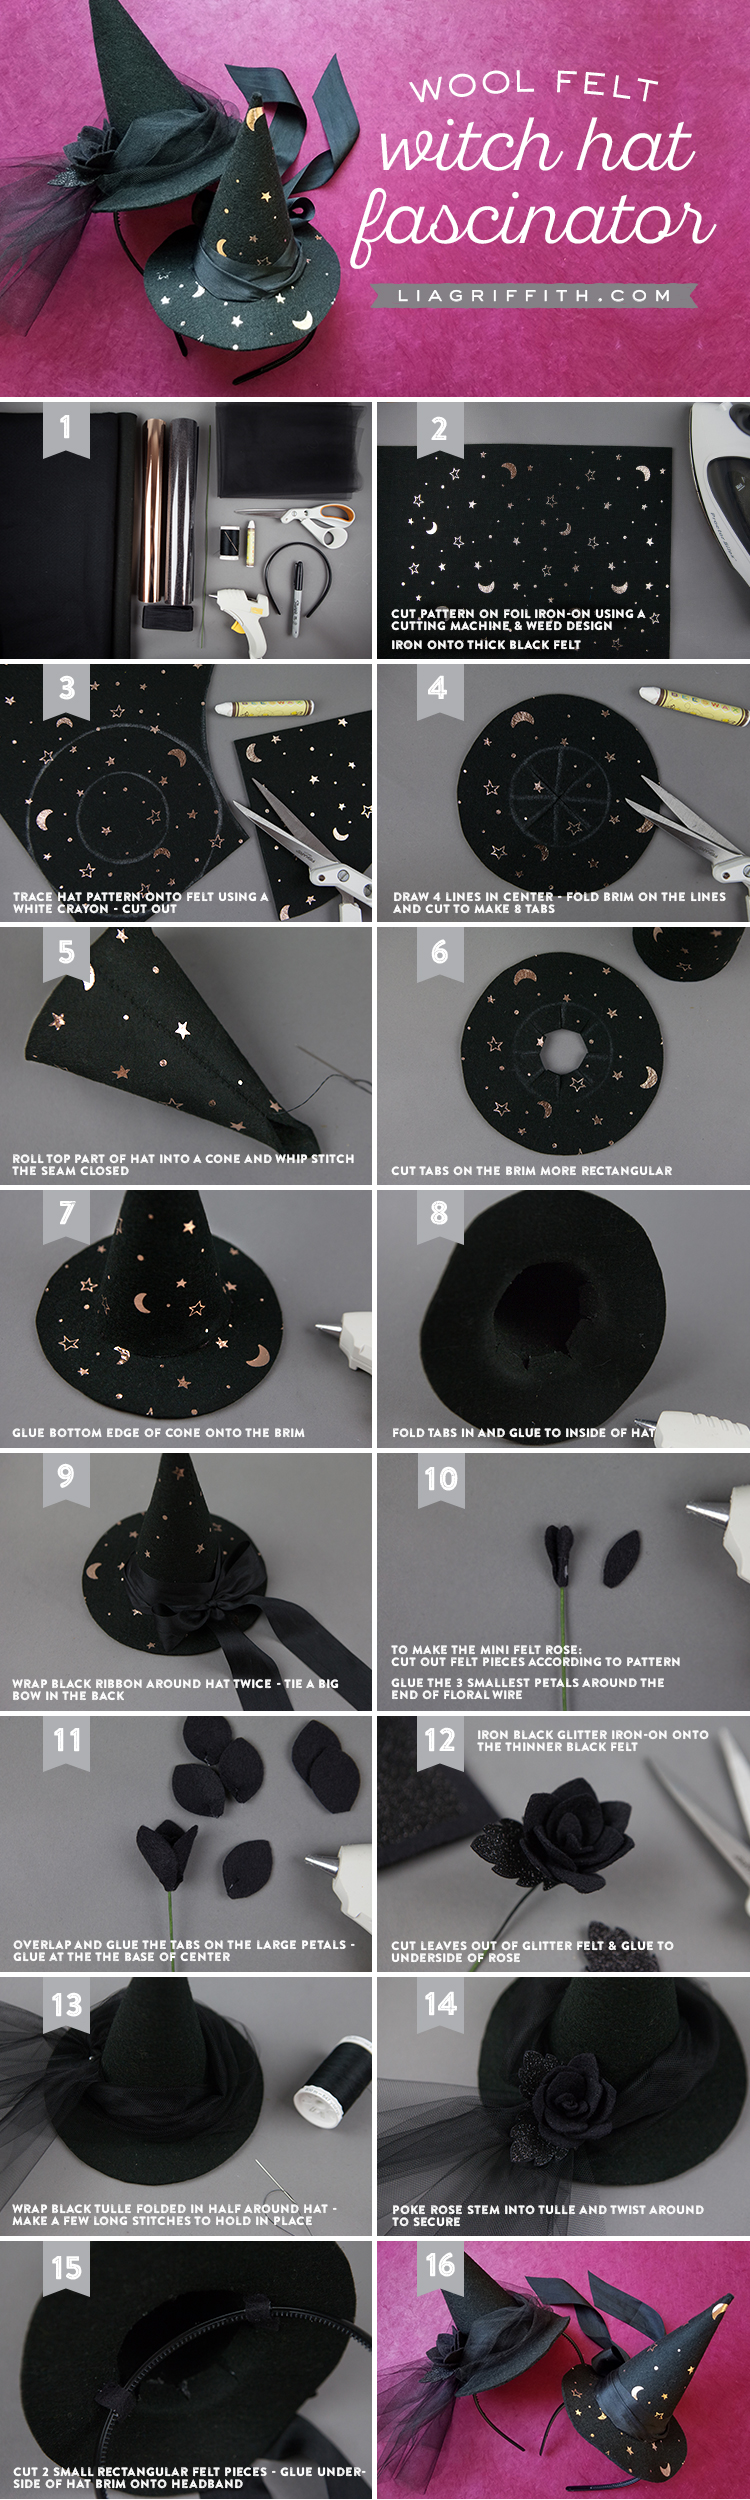 DIY Witch Hat Fascinators for Halloween - Lia Griffith 68dfbaa4380